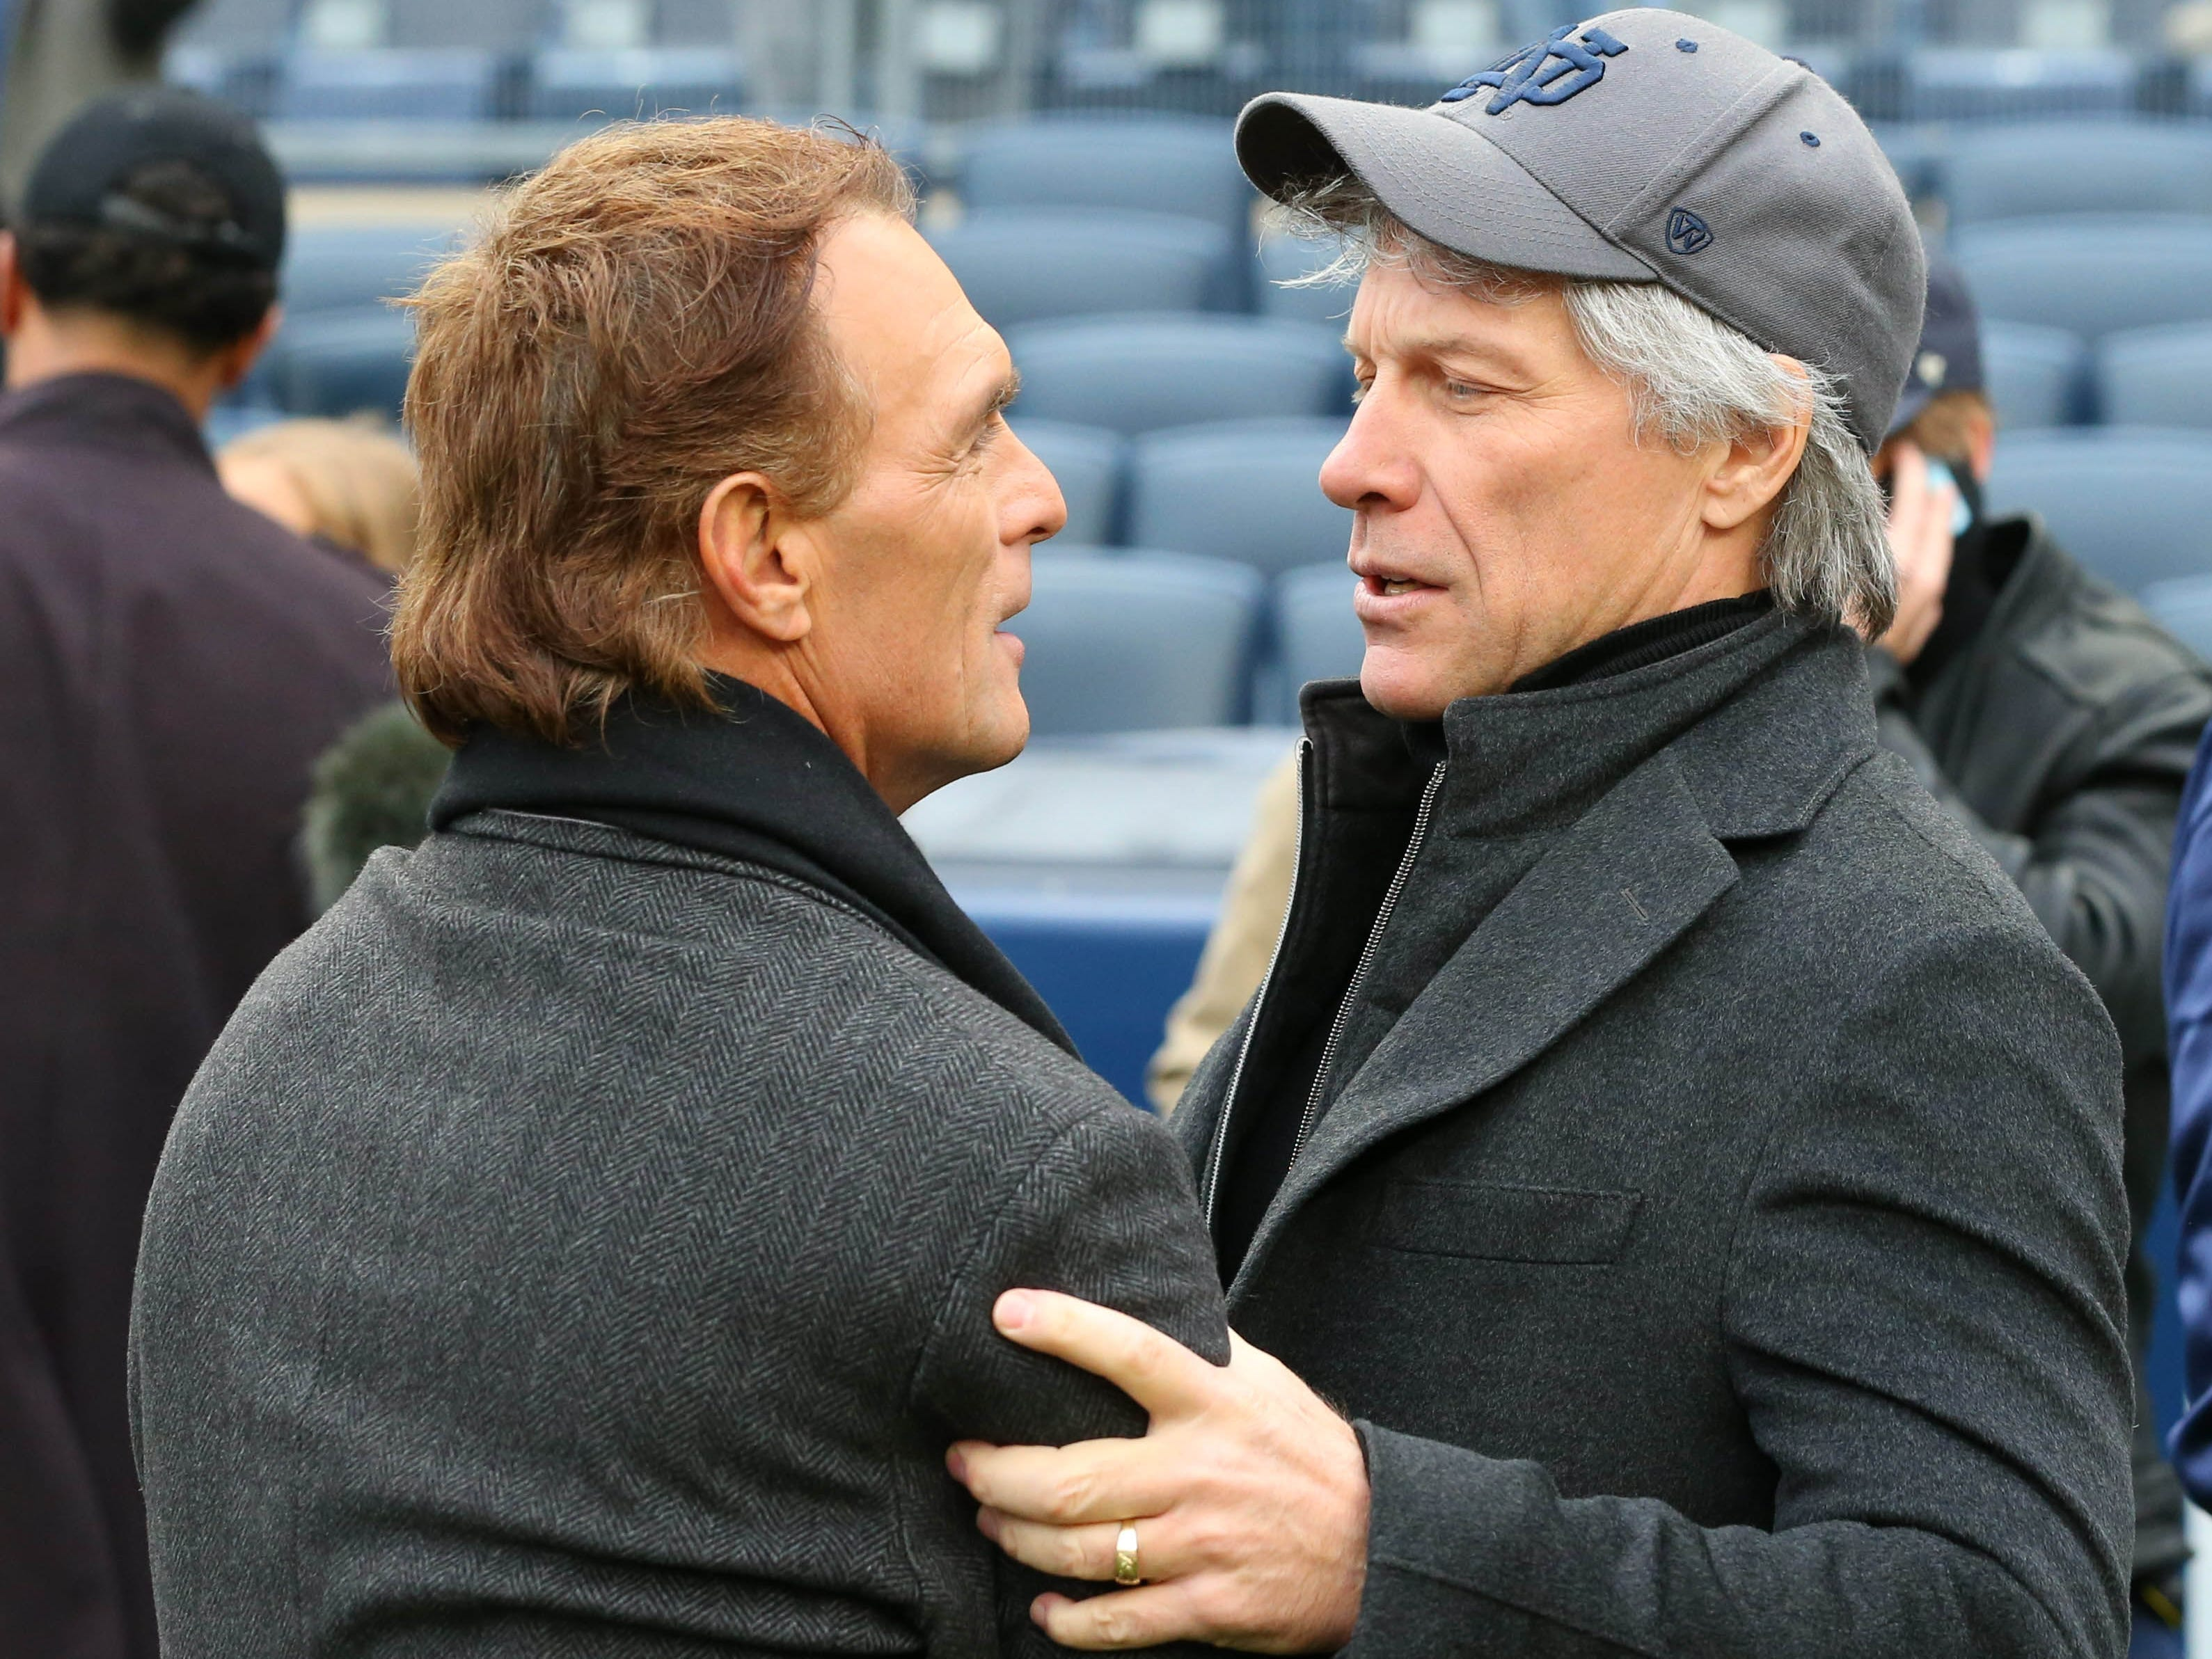 Week 12: Former NFL quarterback Doug Flutie (left) and recording artist Jon Bon Jovi (right) talk prior to the game between the Notre Dame Fighting Irish and the Syracuse Orange at Yankee Stadium.